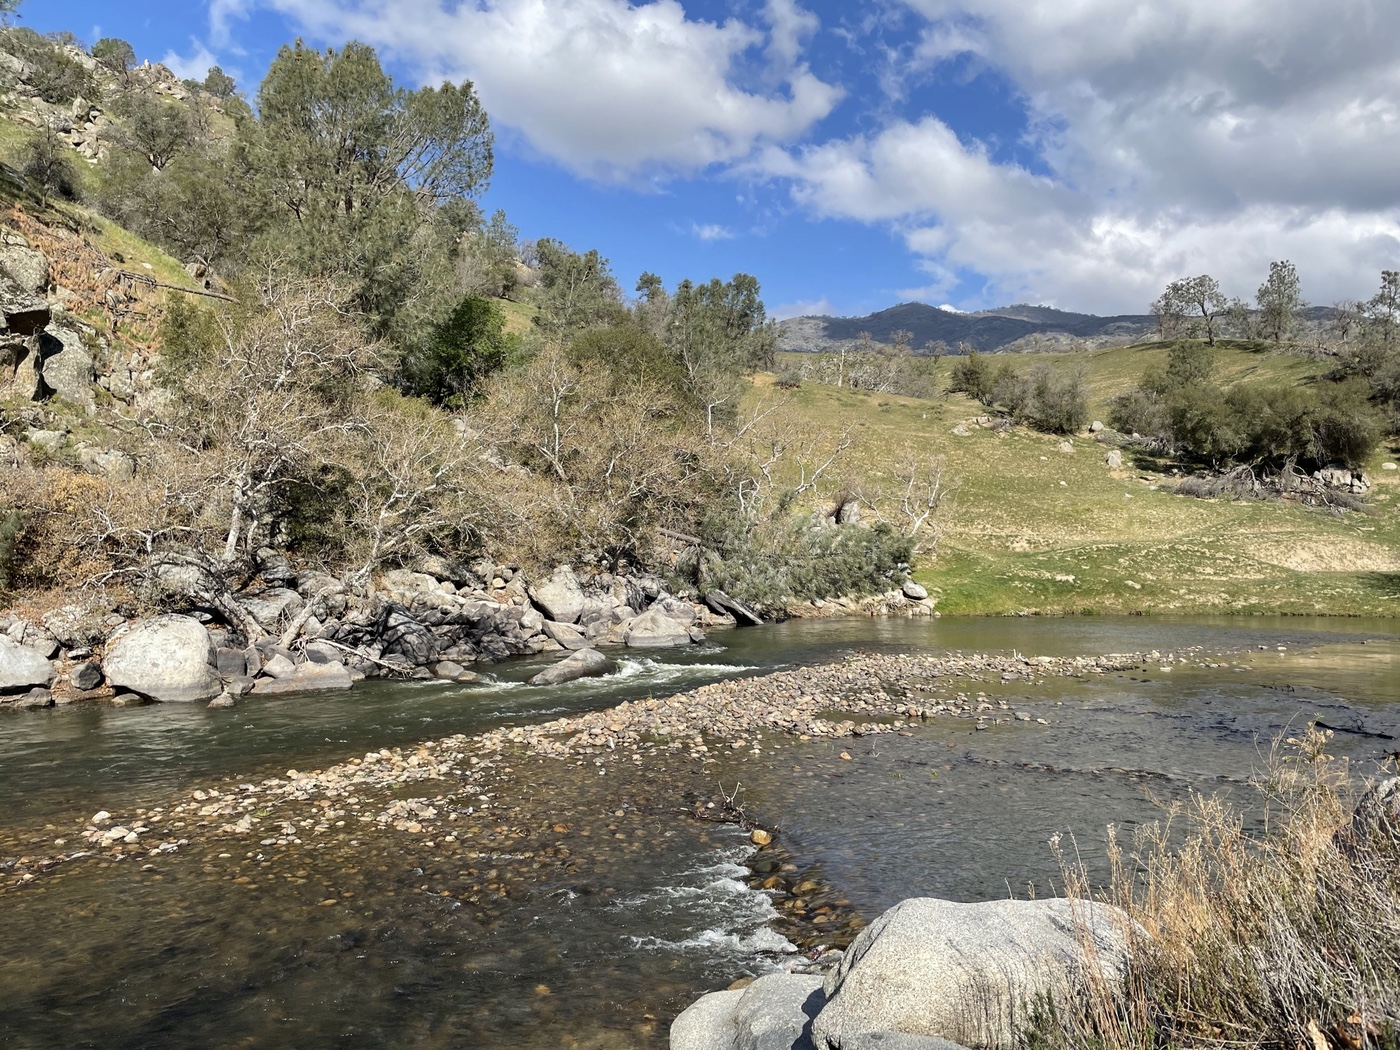 The Kern River